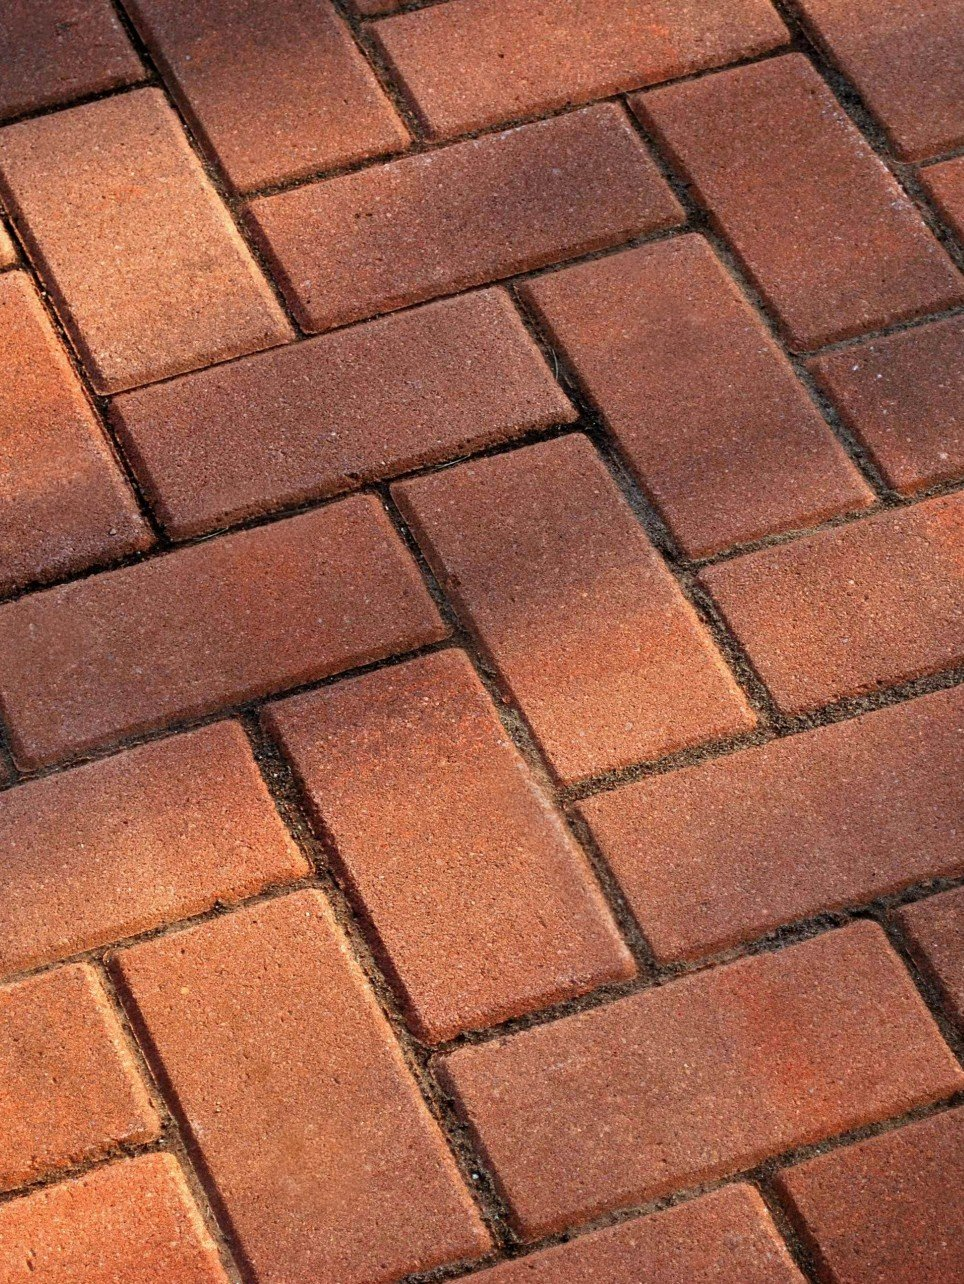 Block Paving Companies Romsley